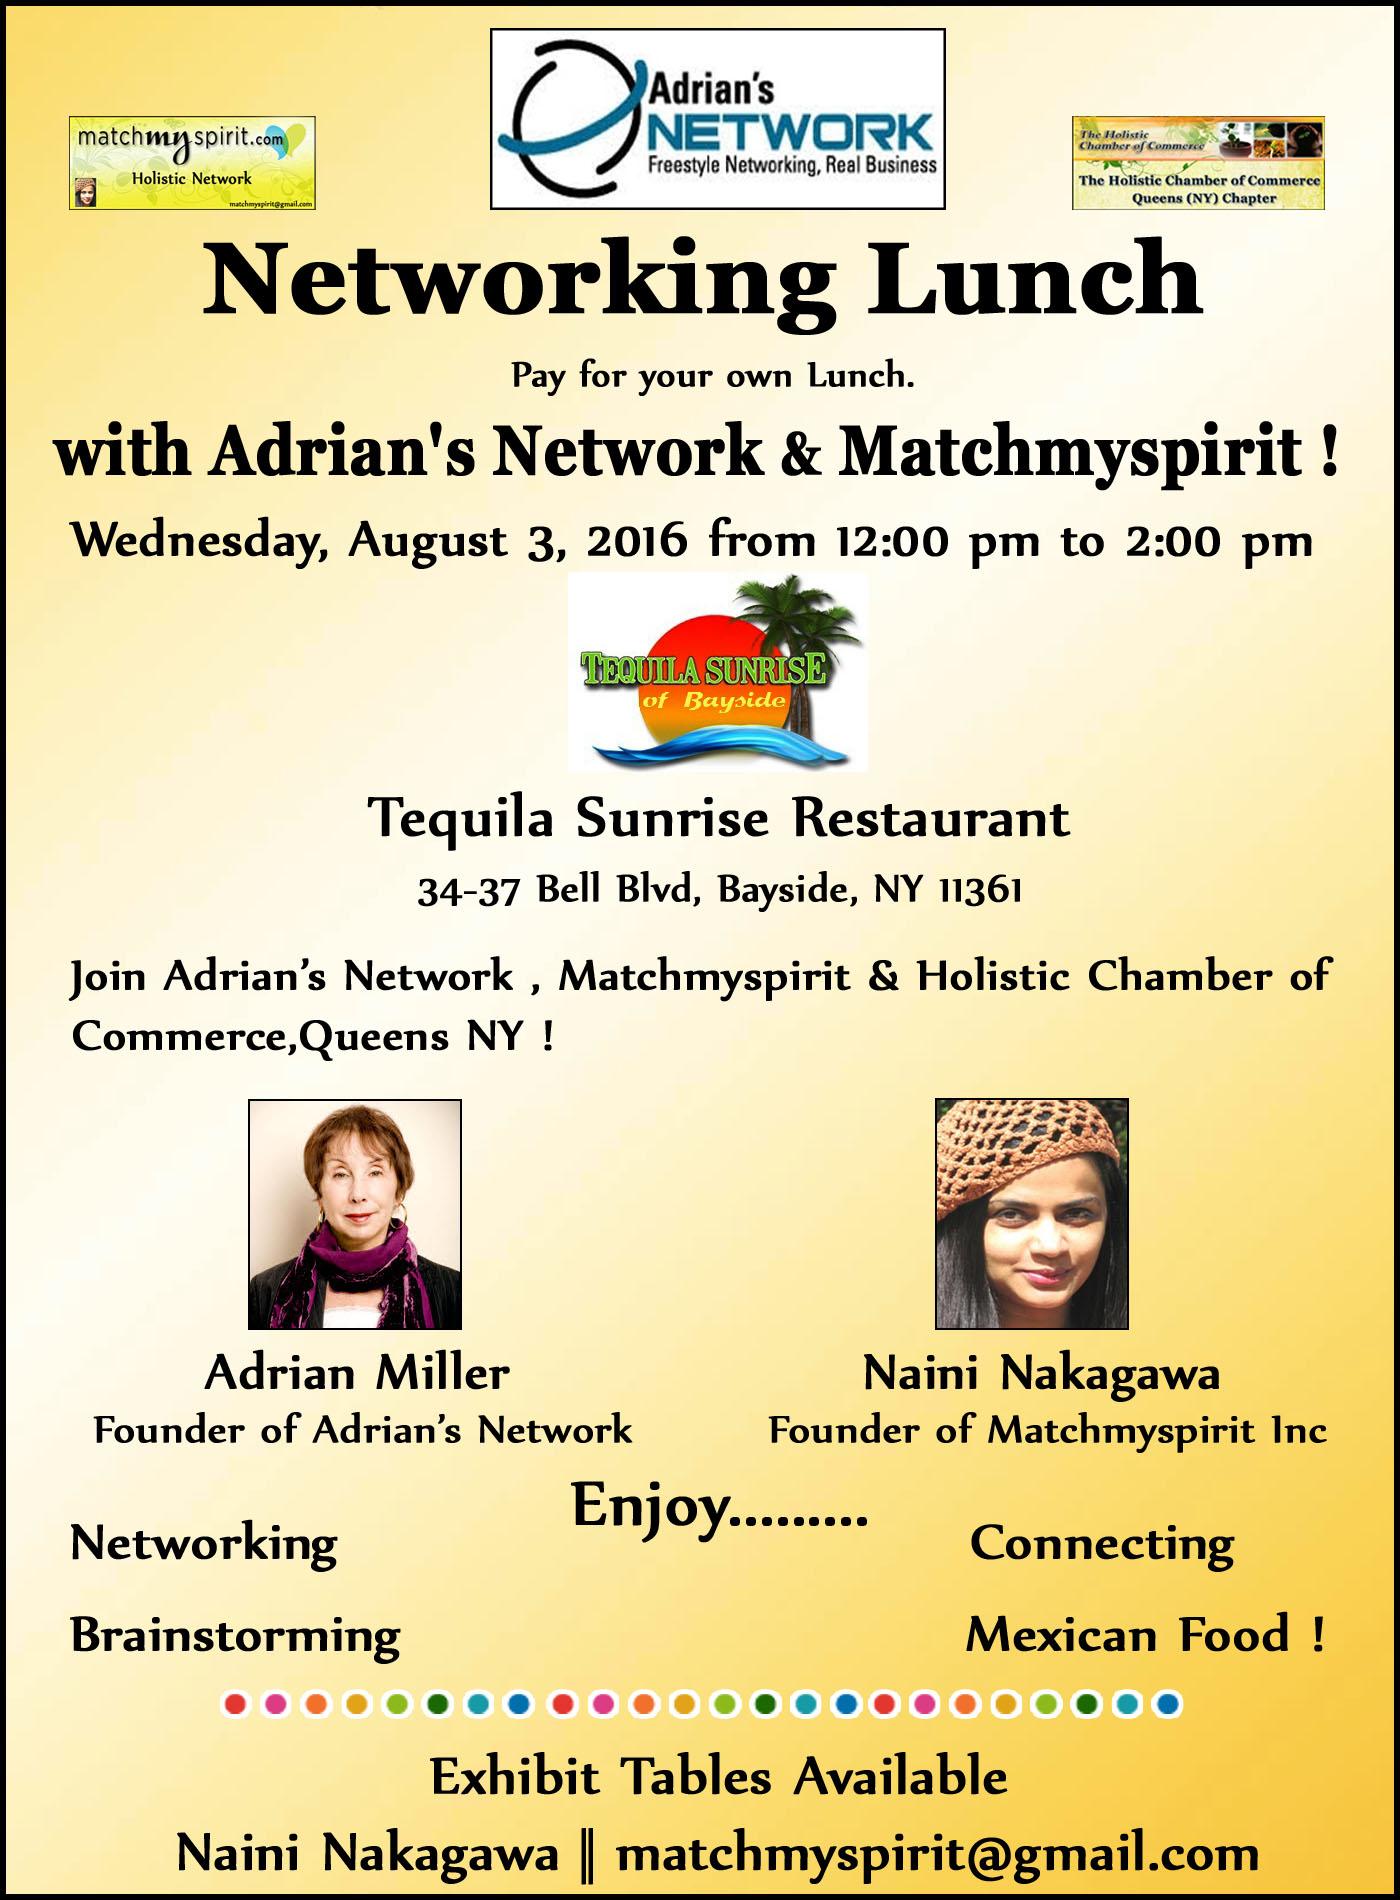 Networking Lunch with Adrian's Network & Matchmyspirit !